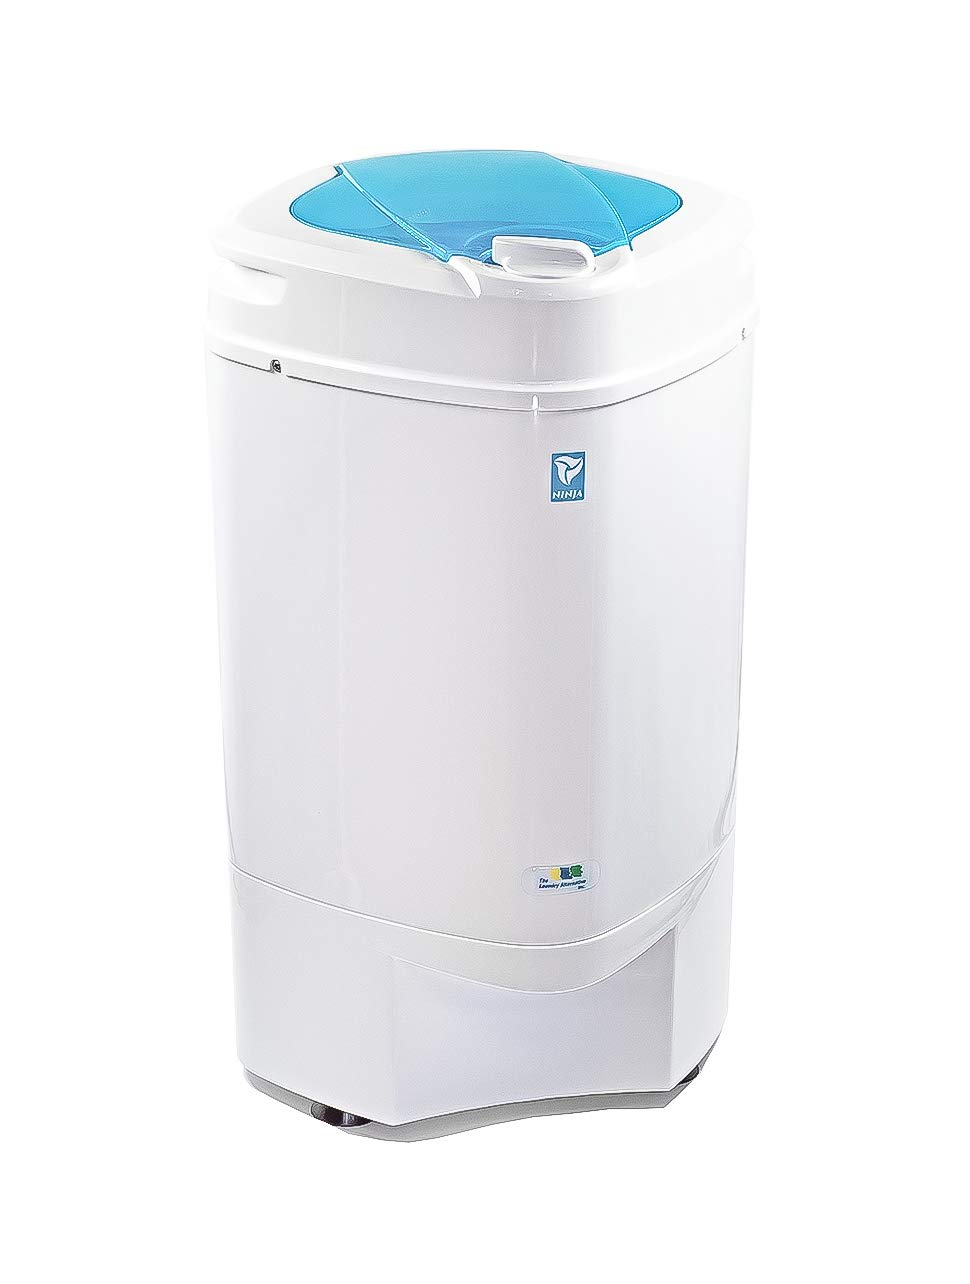 The Laundry Alternative - Ninja Portable Mini 3200 RPM Centrifugal Spin Clothes Dryer with High-Tech Suspension System - 18-Pound Load Capacity